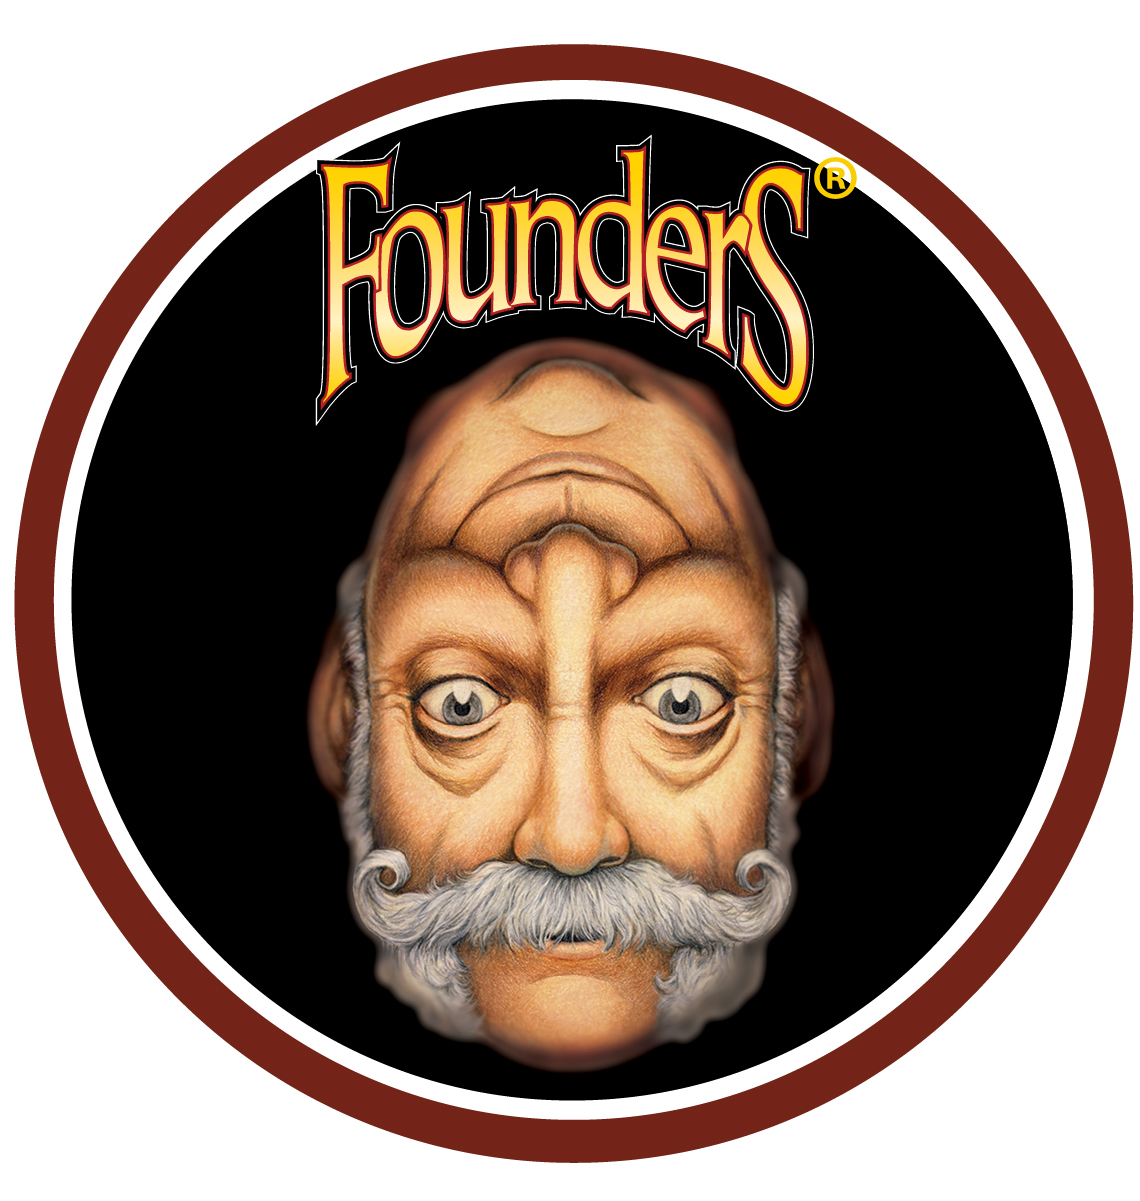 Founders Double Trouble beer badge